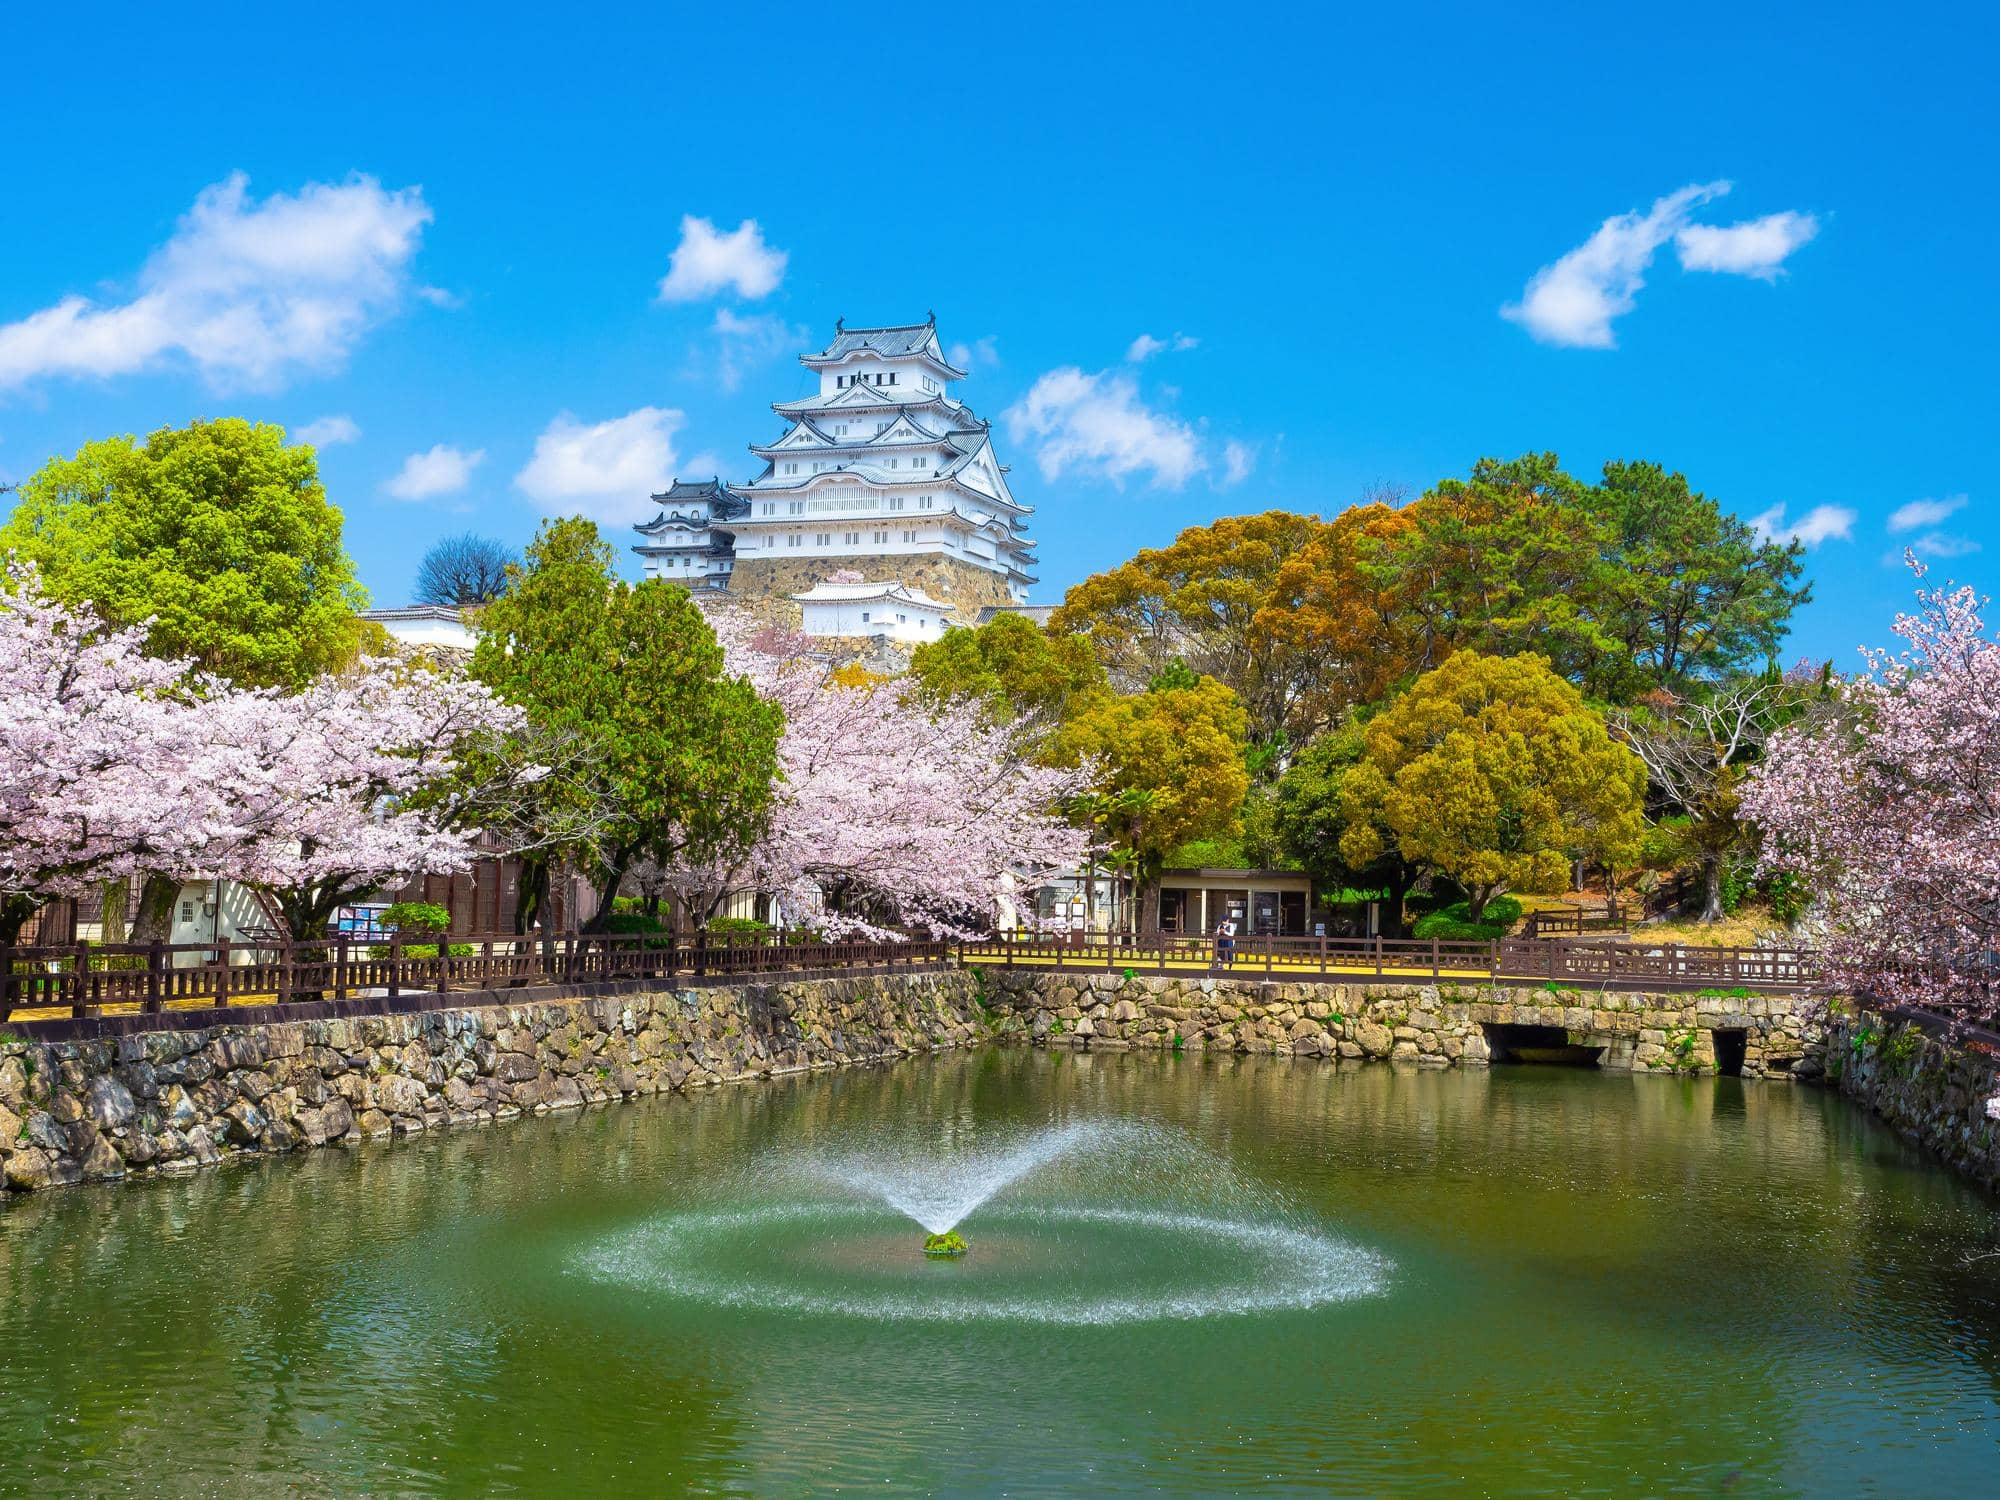 Himeji Castle S History Highlights Visit Japan S First World Heritage Site The Gate Japan Travel Magazine Find Tourism Travel Info